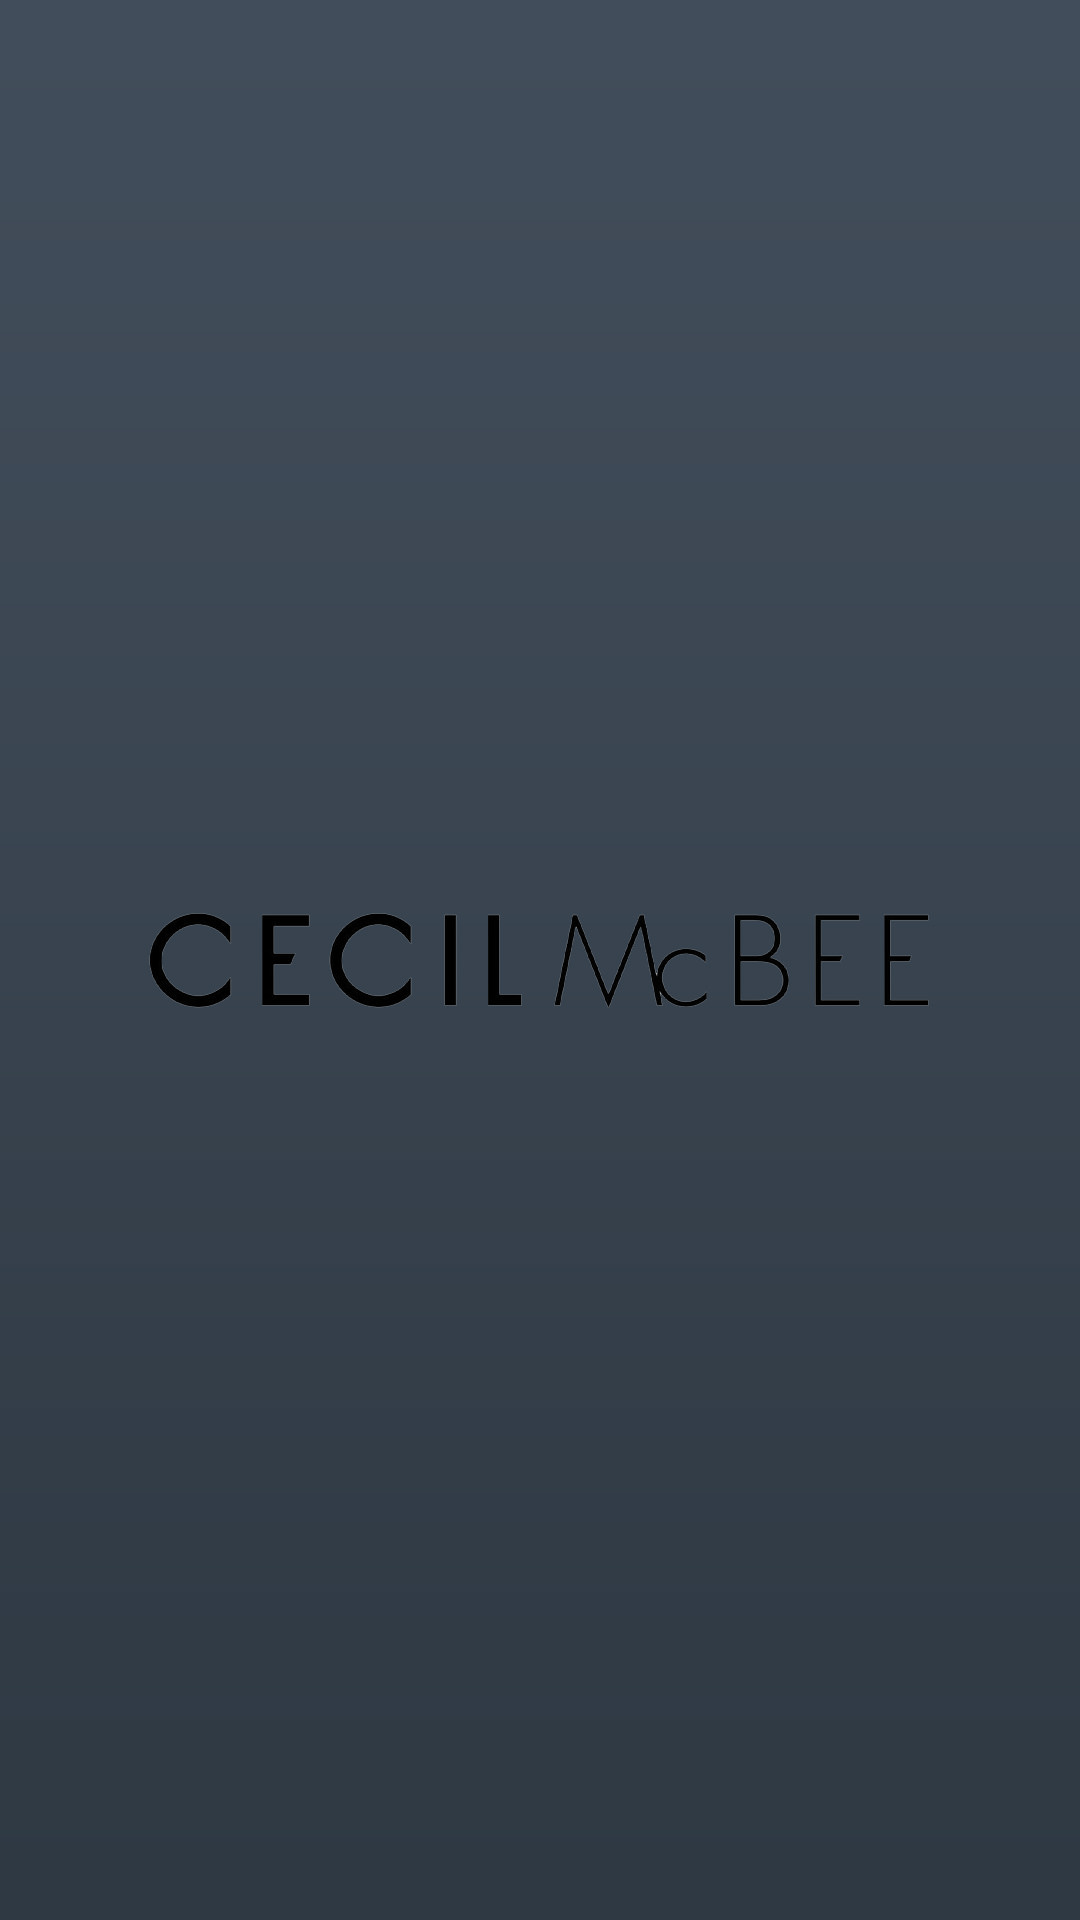 cecil00013 - セシルマクビー[CECIL McBEE]の高画質スマホ壁紙23枚 [iPhone&Androidに対応]